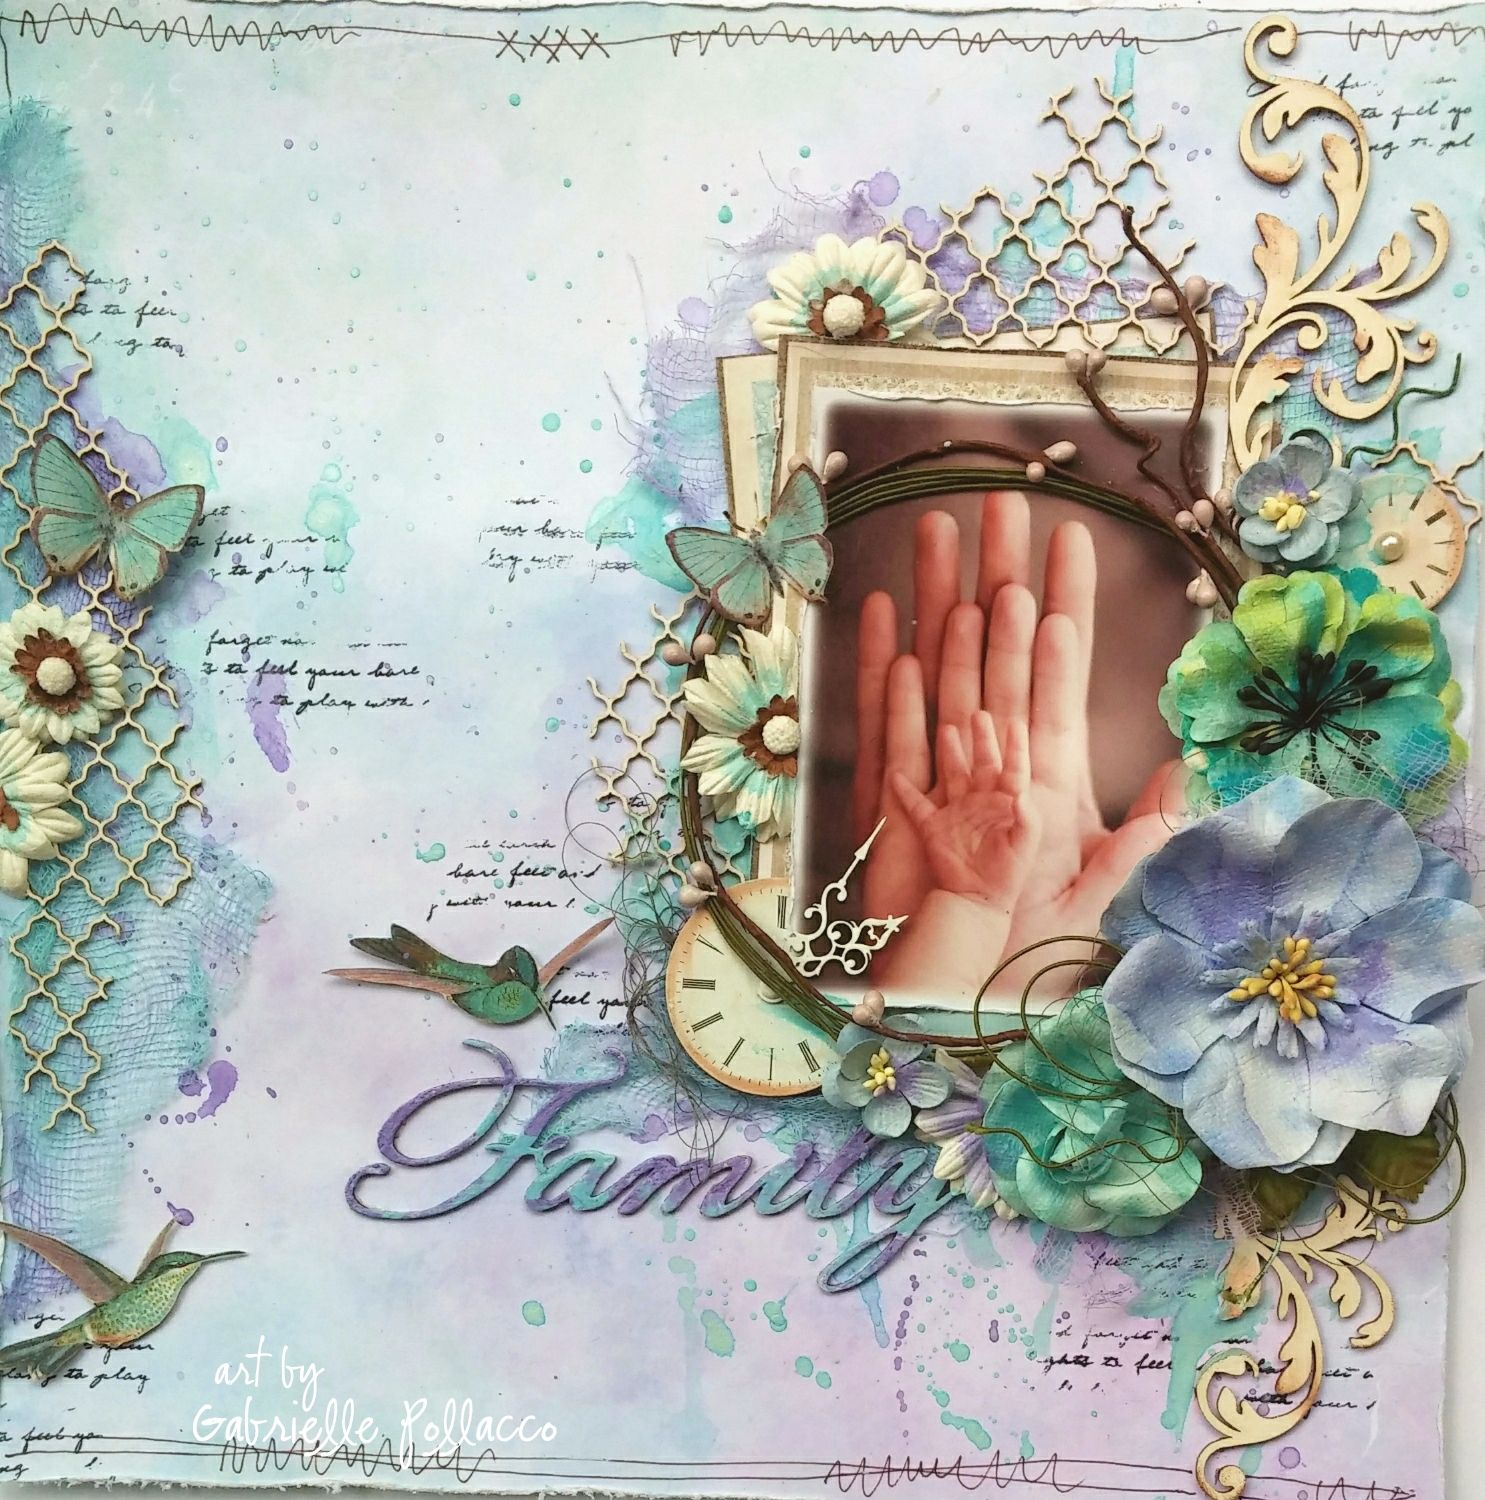 Family scrapbook ideas on pinterest - Such A Pretty Mess Family A New Scrapbook Diaries Kit Page Video Tutorial